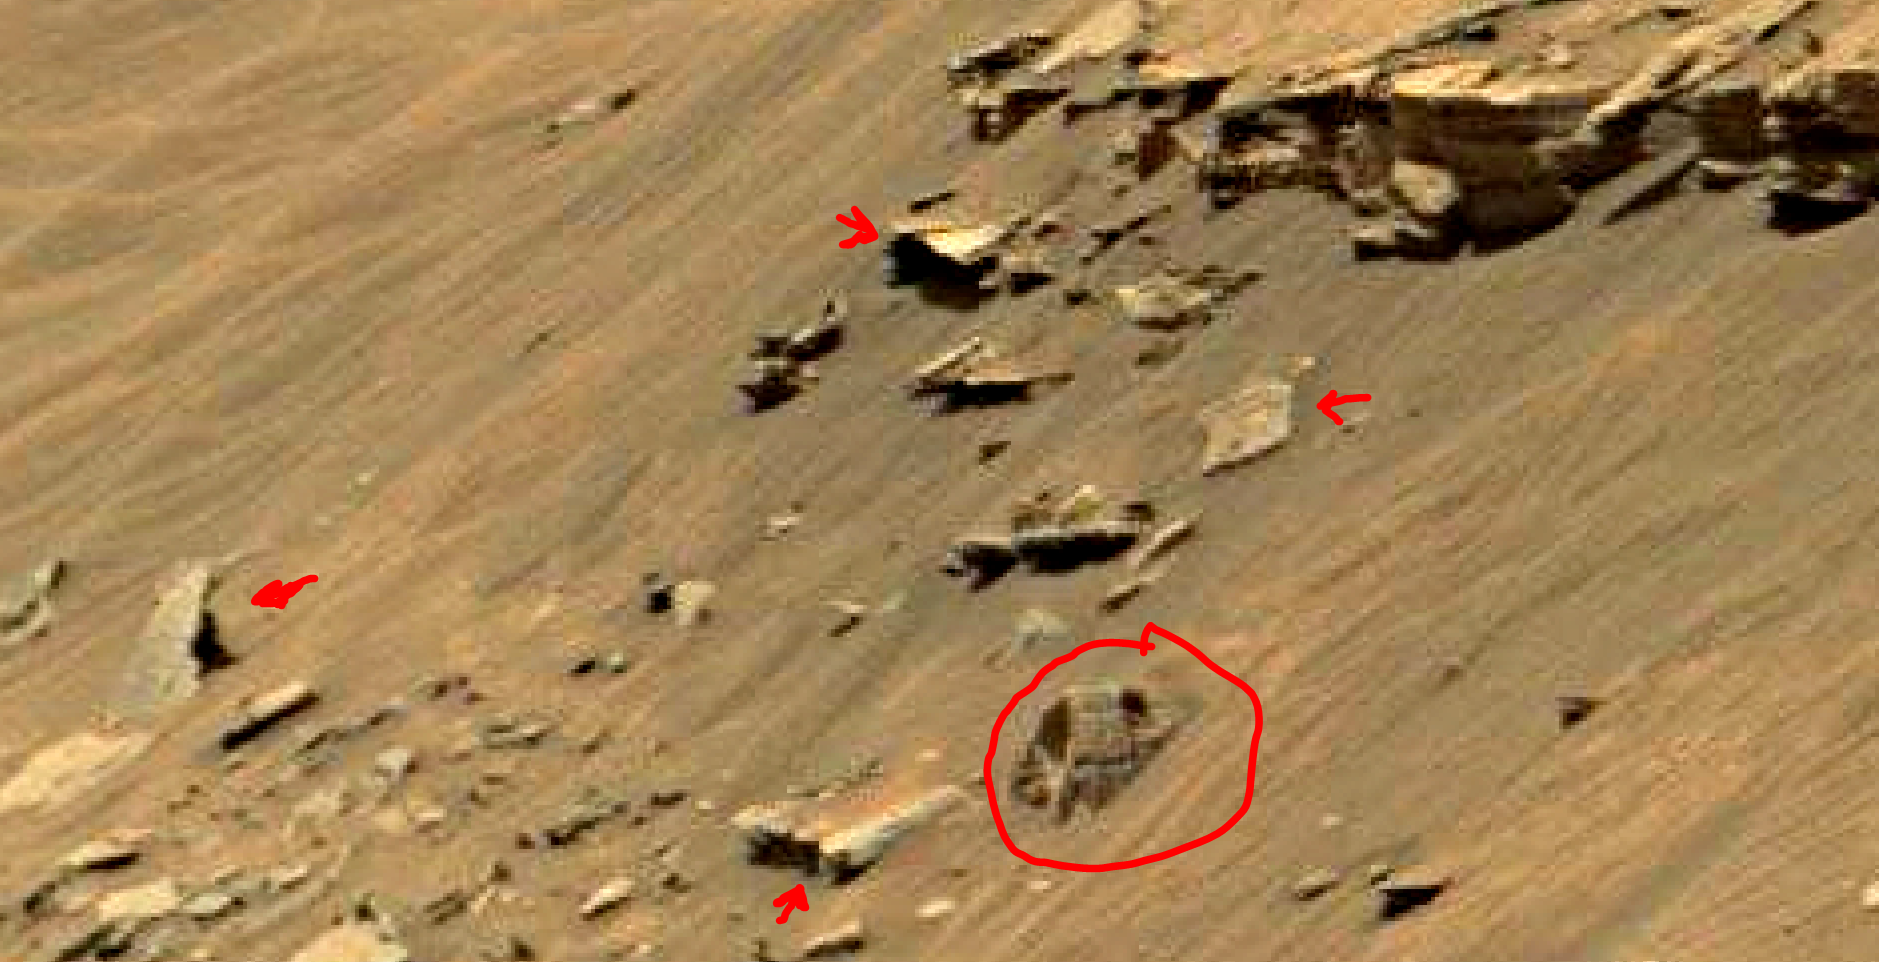 mars sol 1447 anomaly artifacts 7 - was life on mars